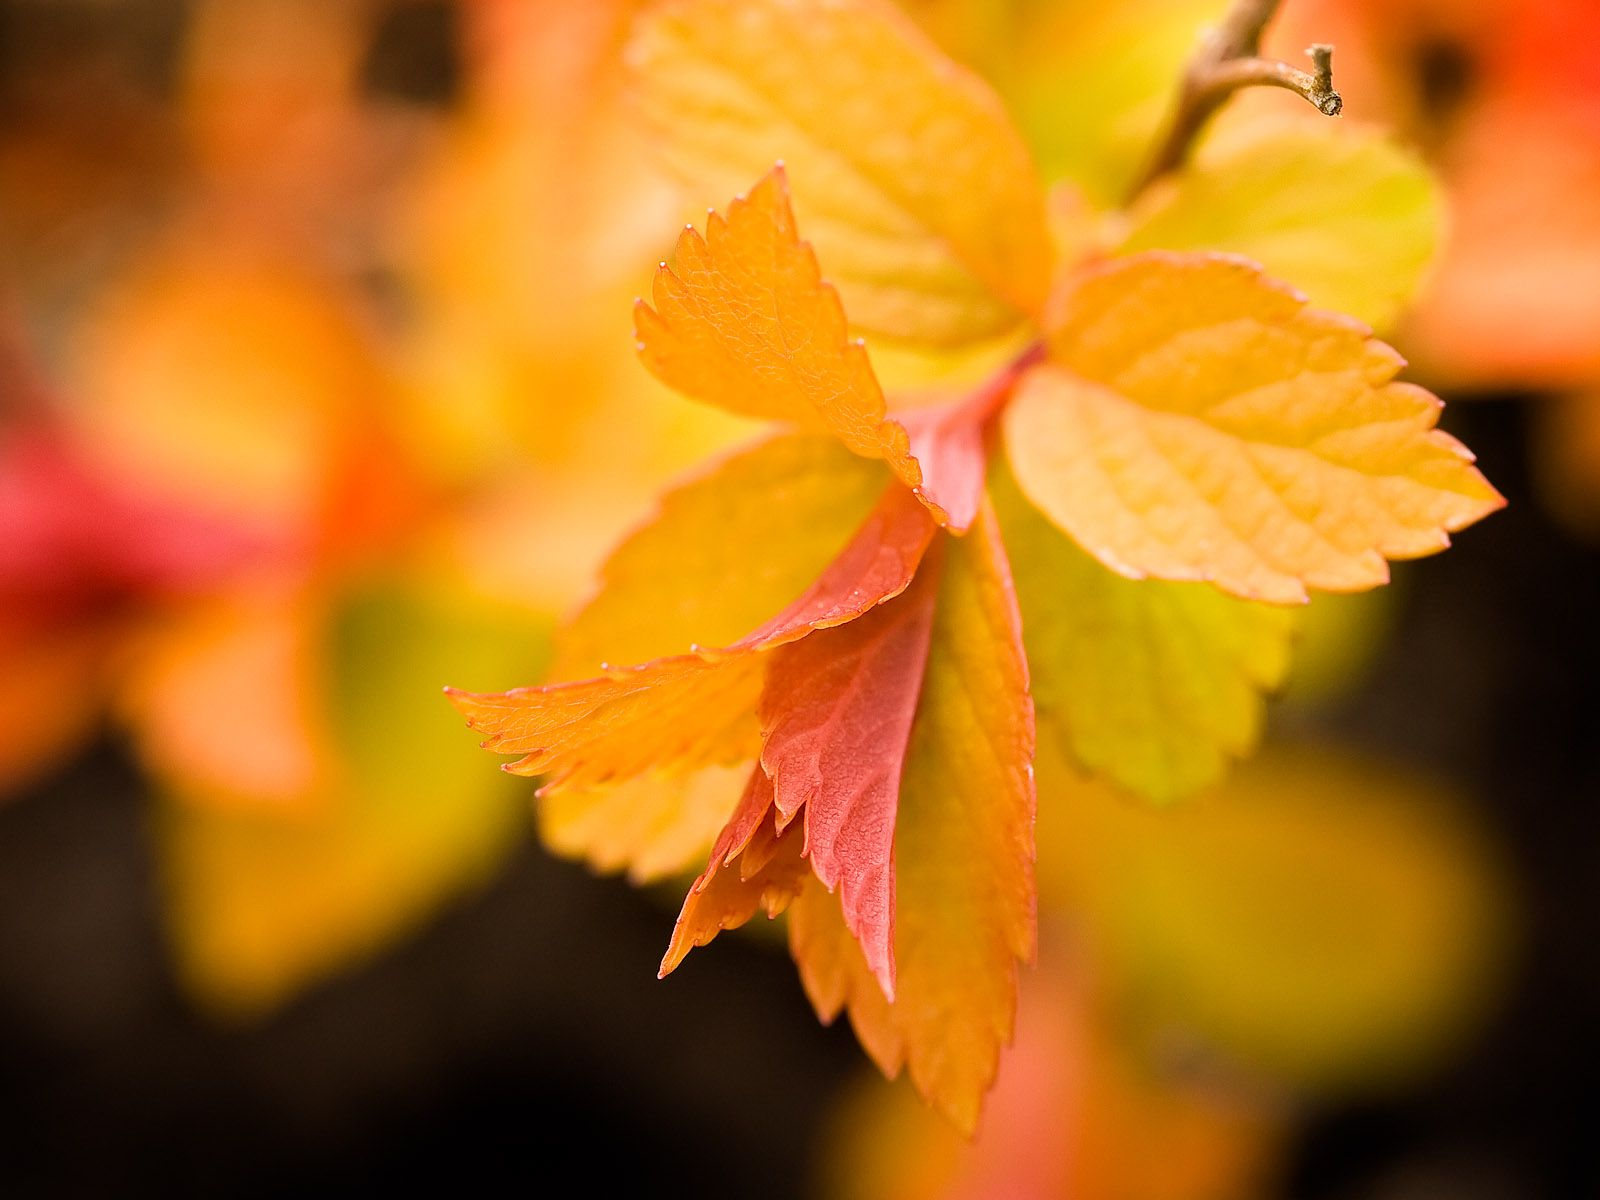 Free autumn wallpaper featuring a branch full of yellow, orange, and red leaves.